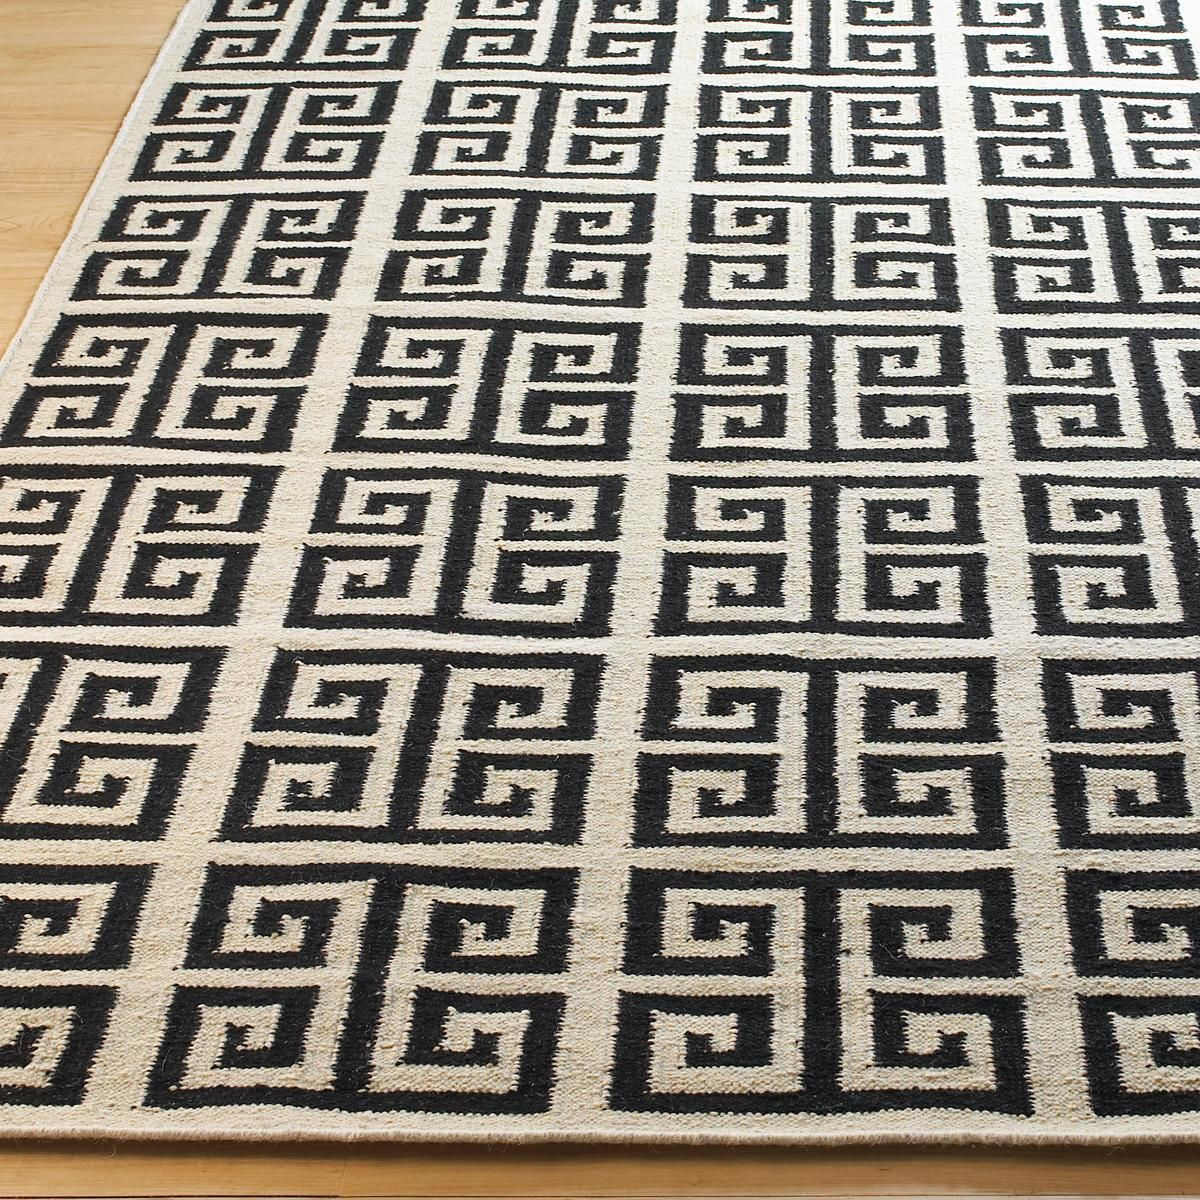 Greek Key Dhurrie Rug 4 Colors Showcasing A Labyrinth Of Design This